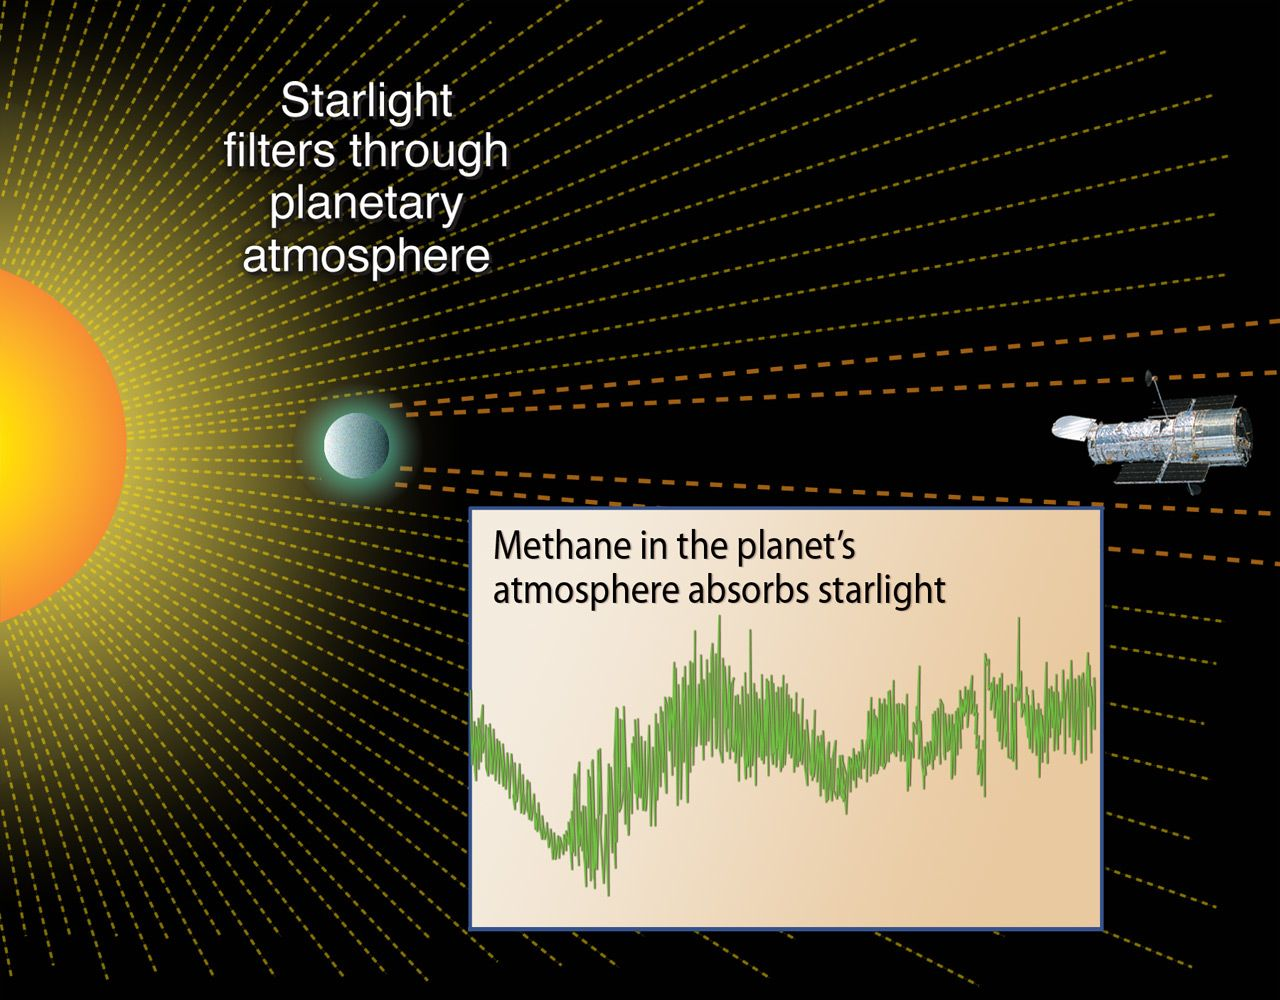 Planets Origins Of Life James Webb Space Telescope Planets Planetary Atmosphere